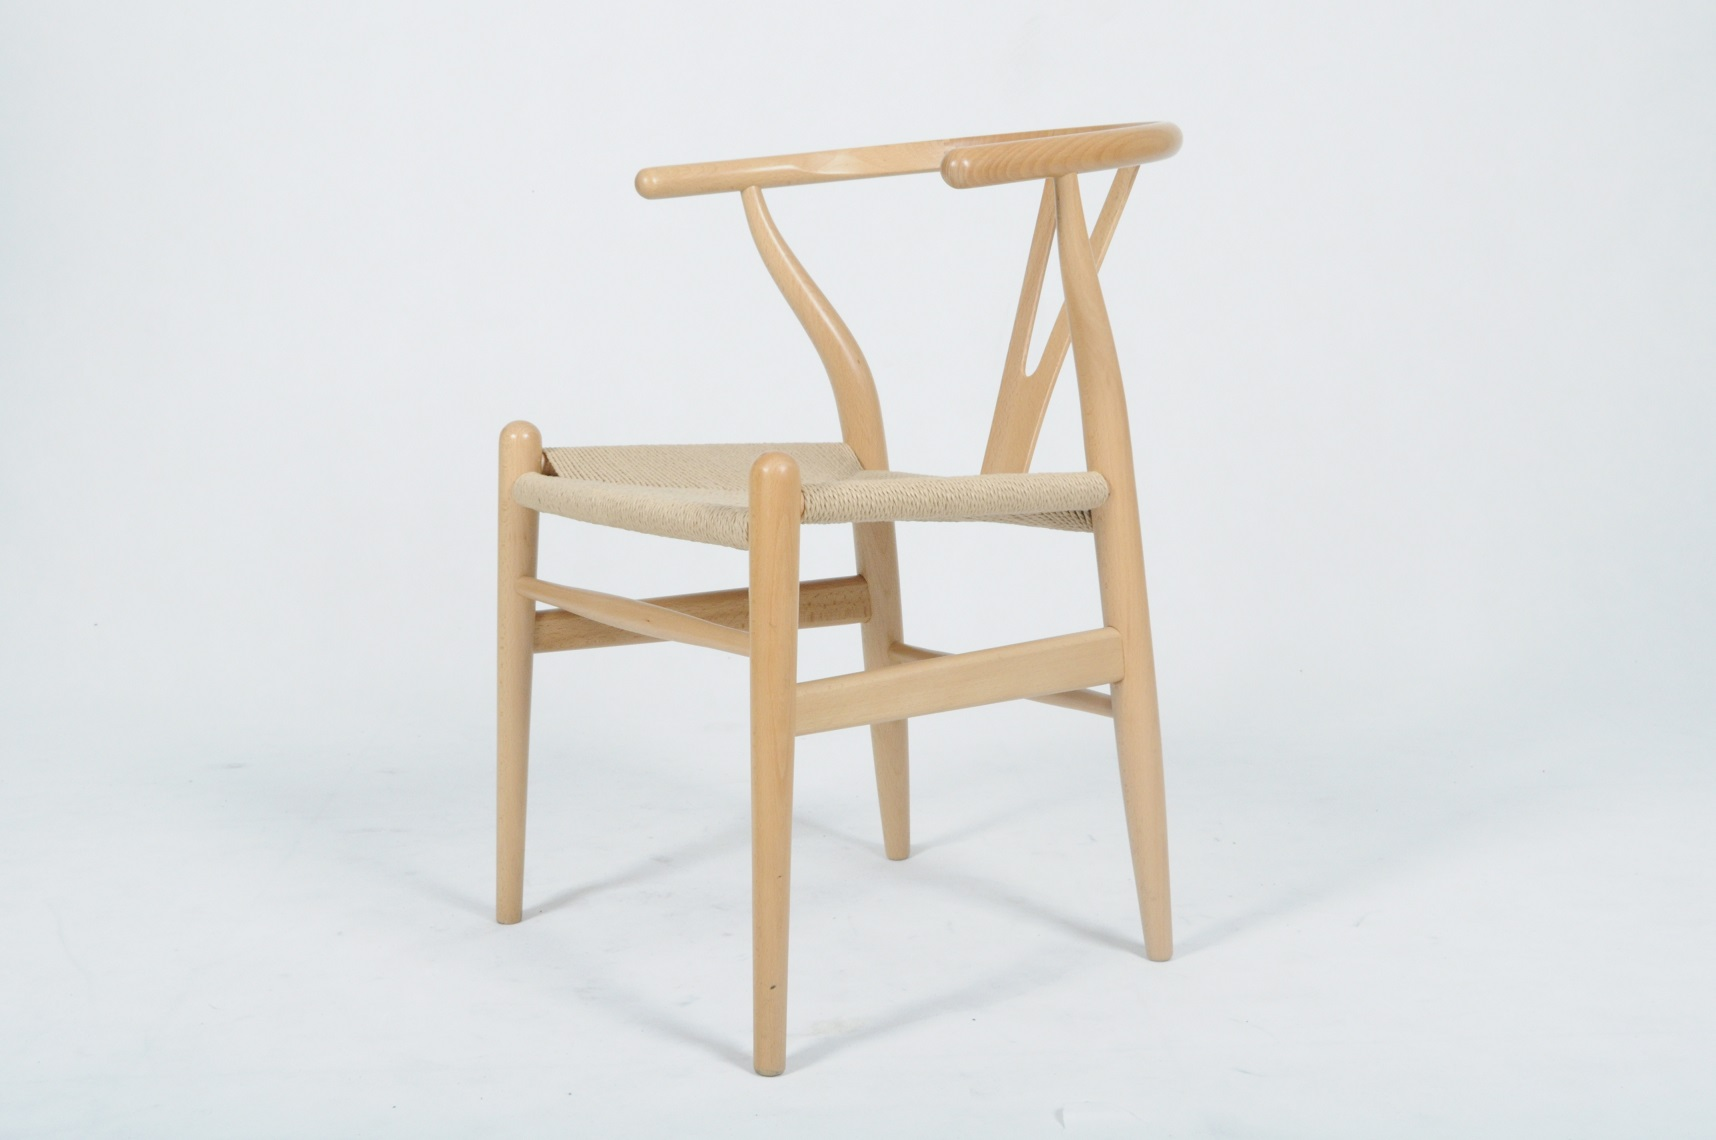 Hans wegner Wishbone chair replica